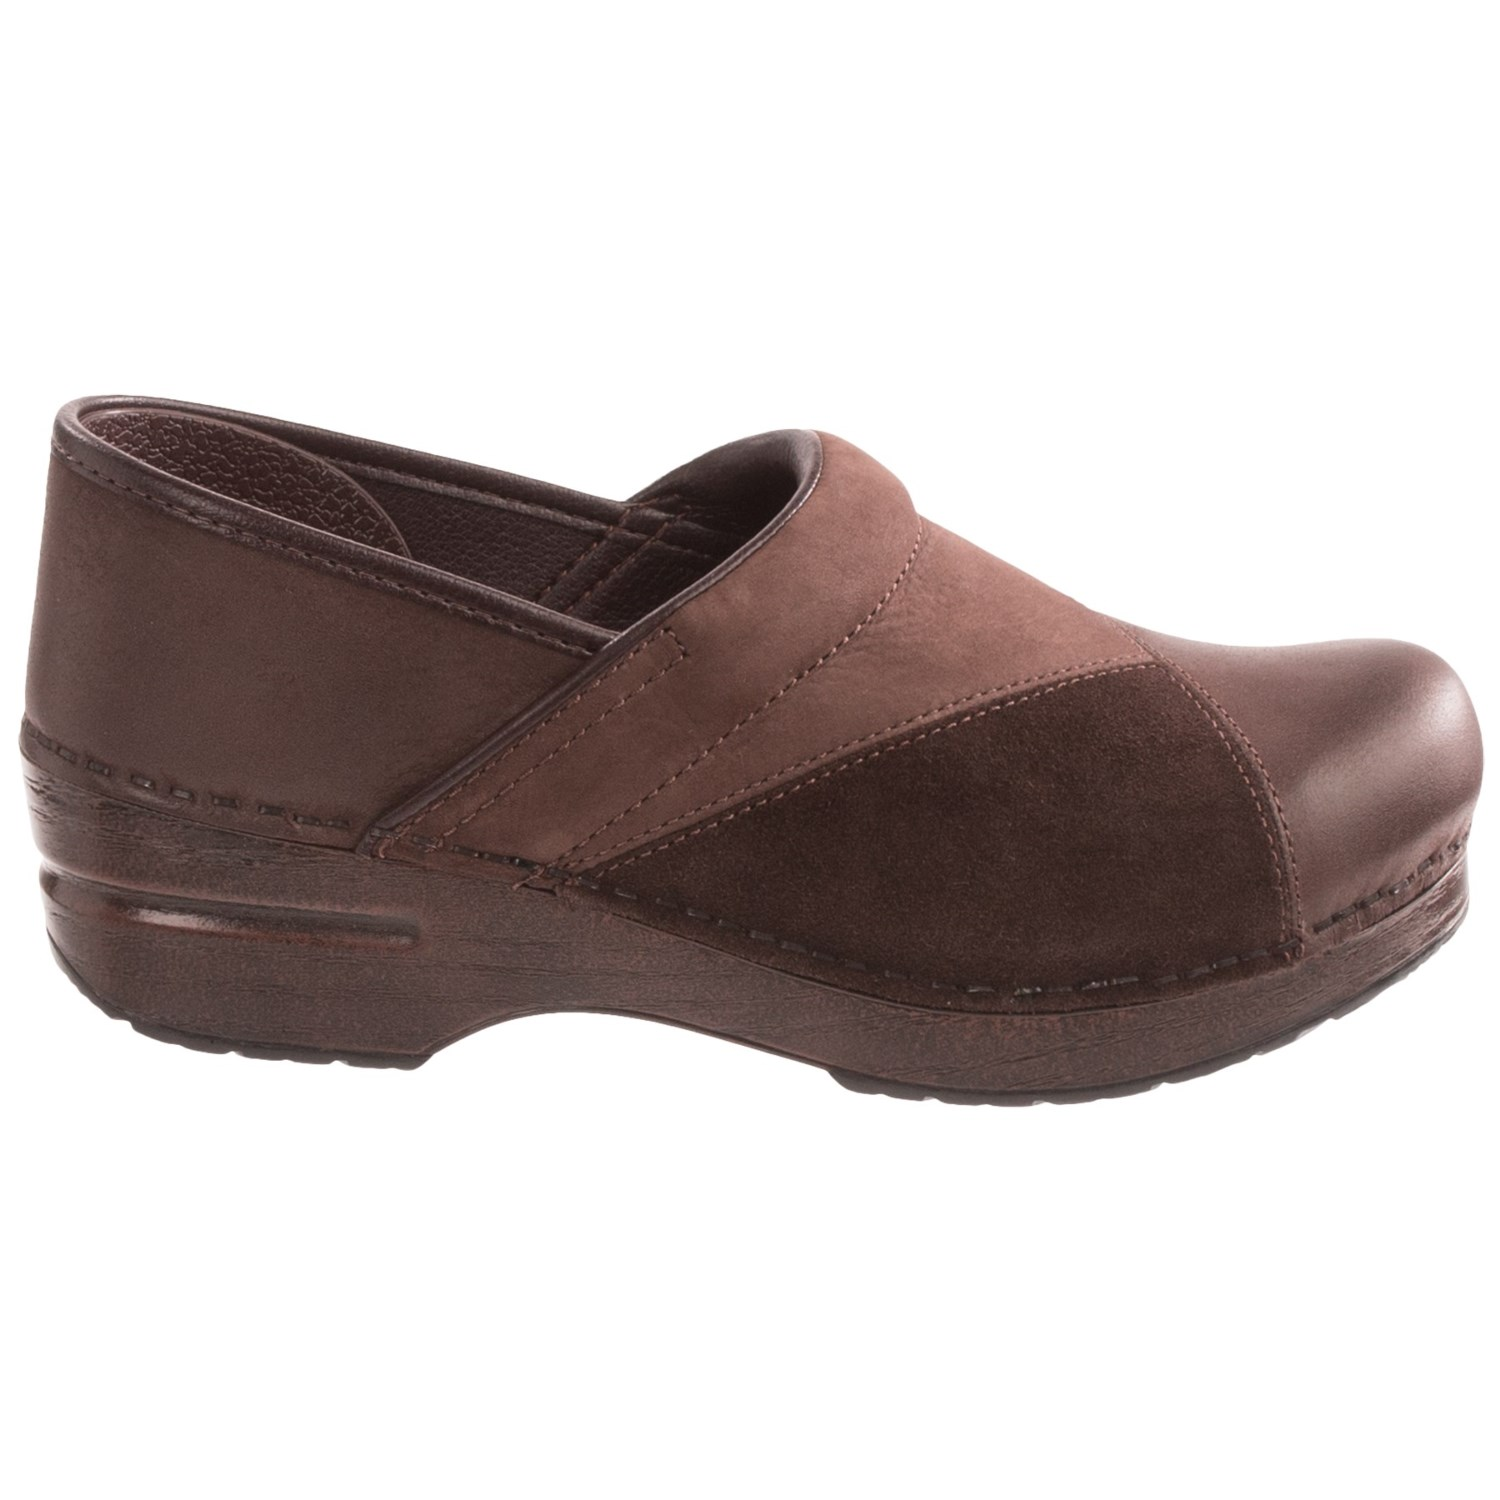 Keen Clogs Clearance